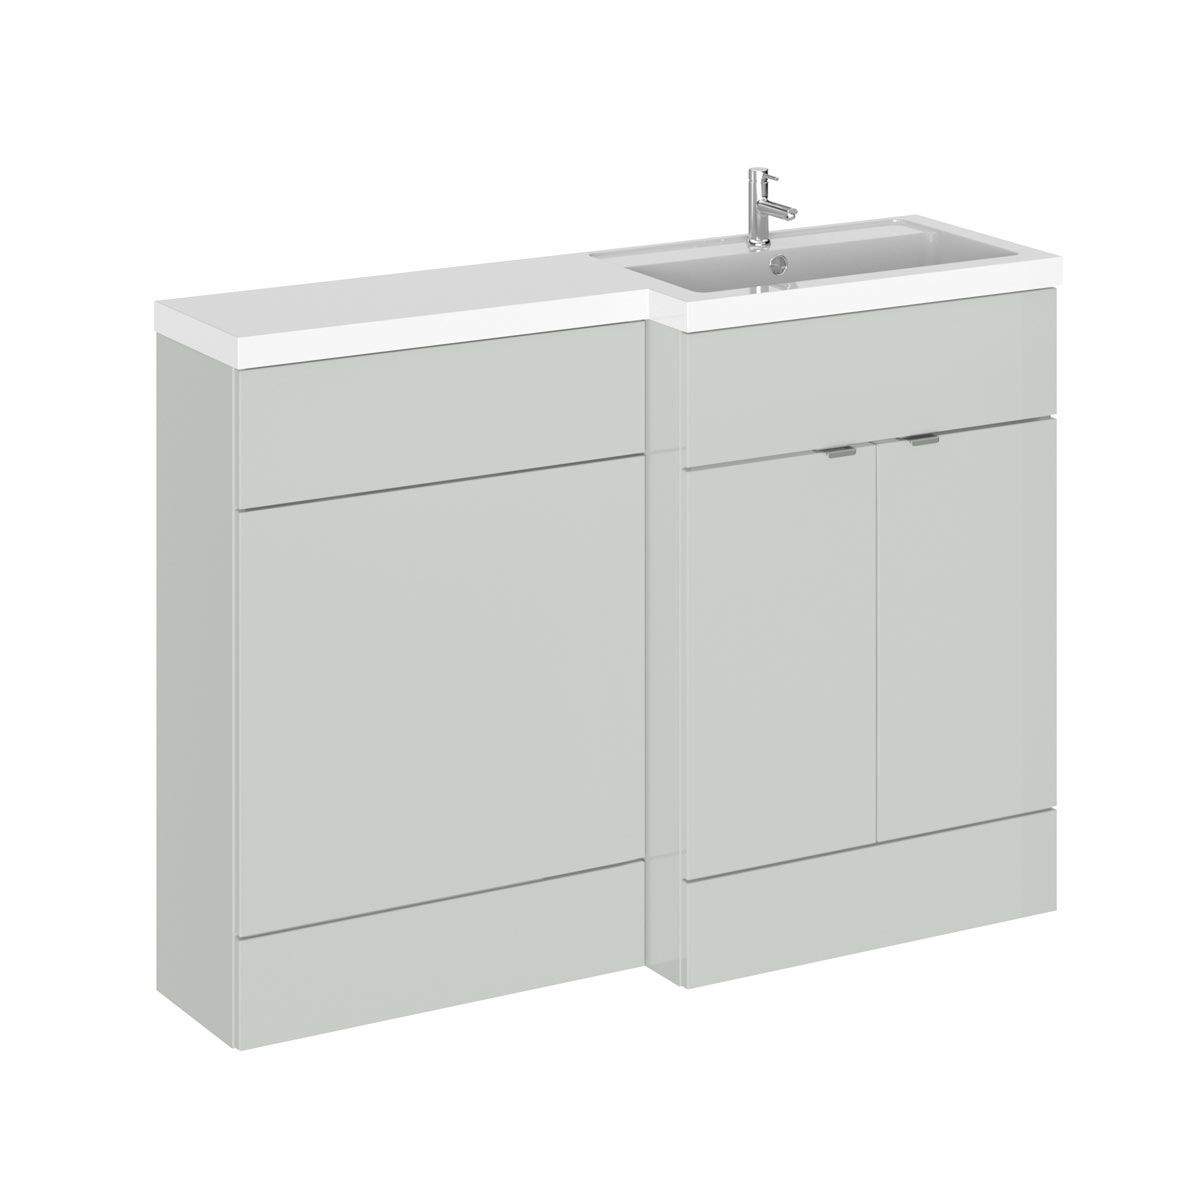 Hudson Reed Fusion Gloss Grey Mist Full Depth Combination Furniture Pack 1200mm Right Hand